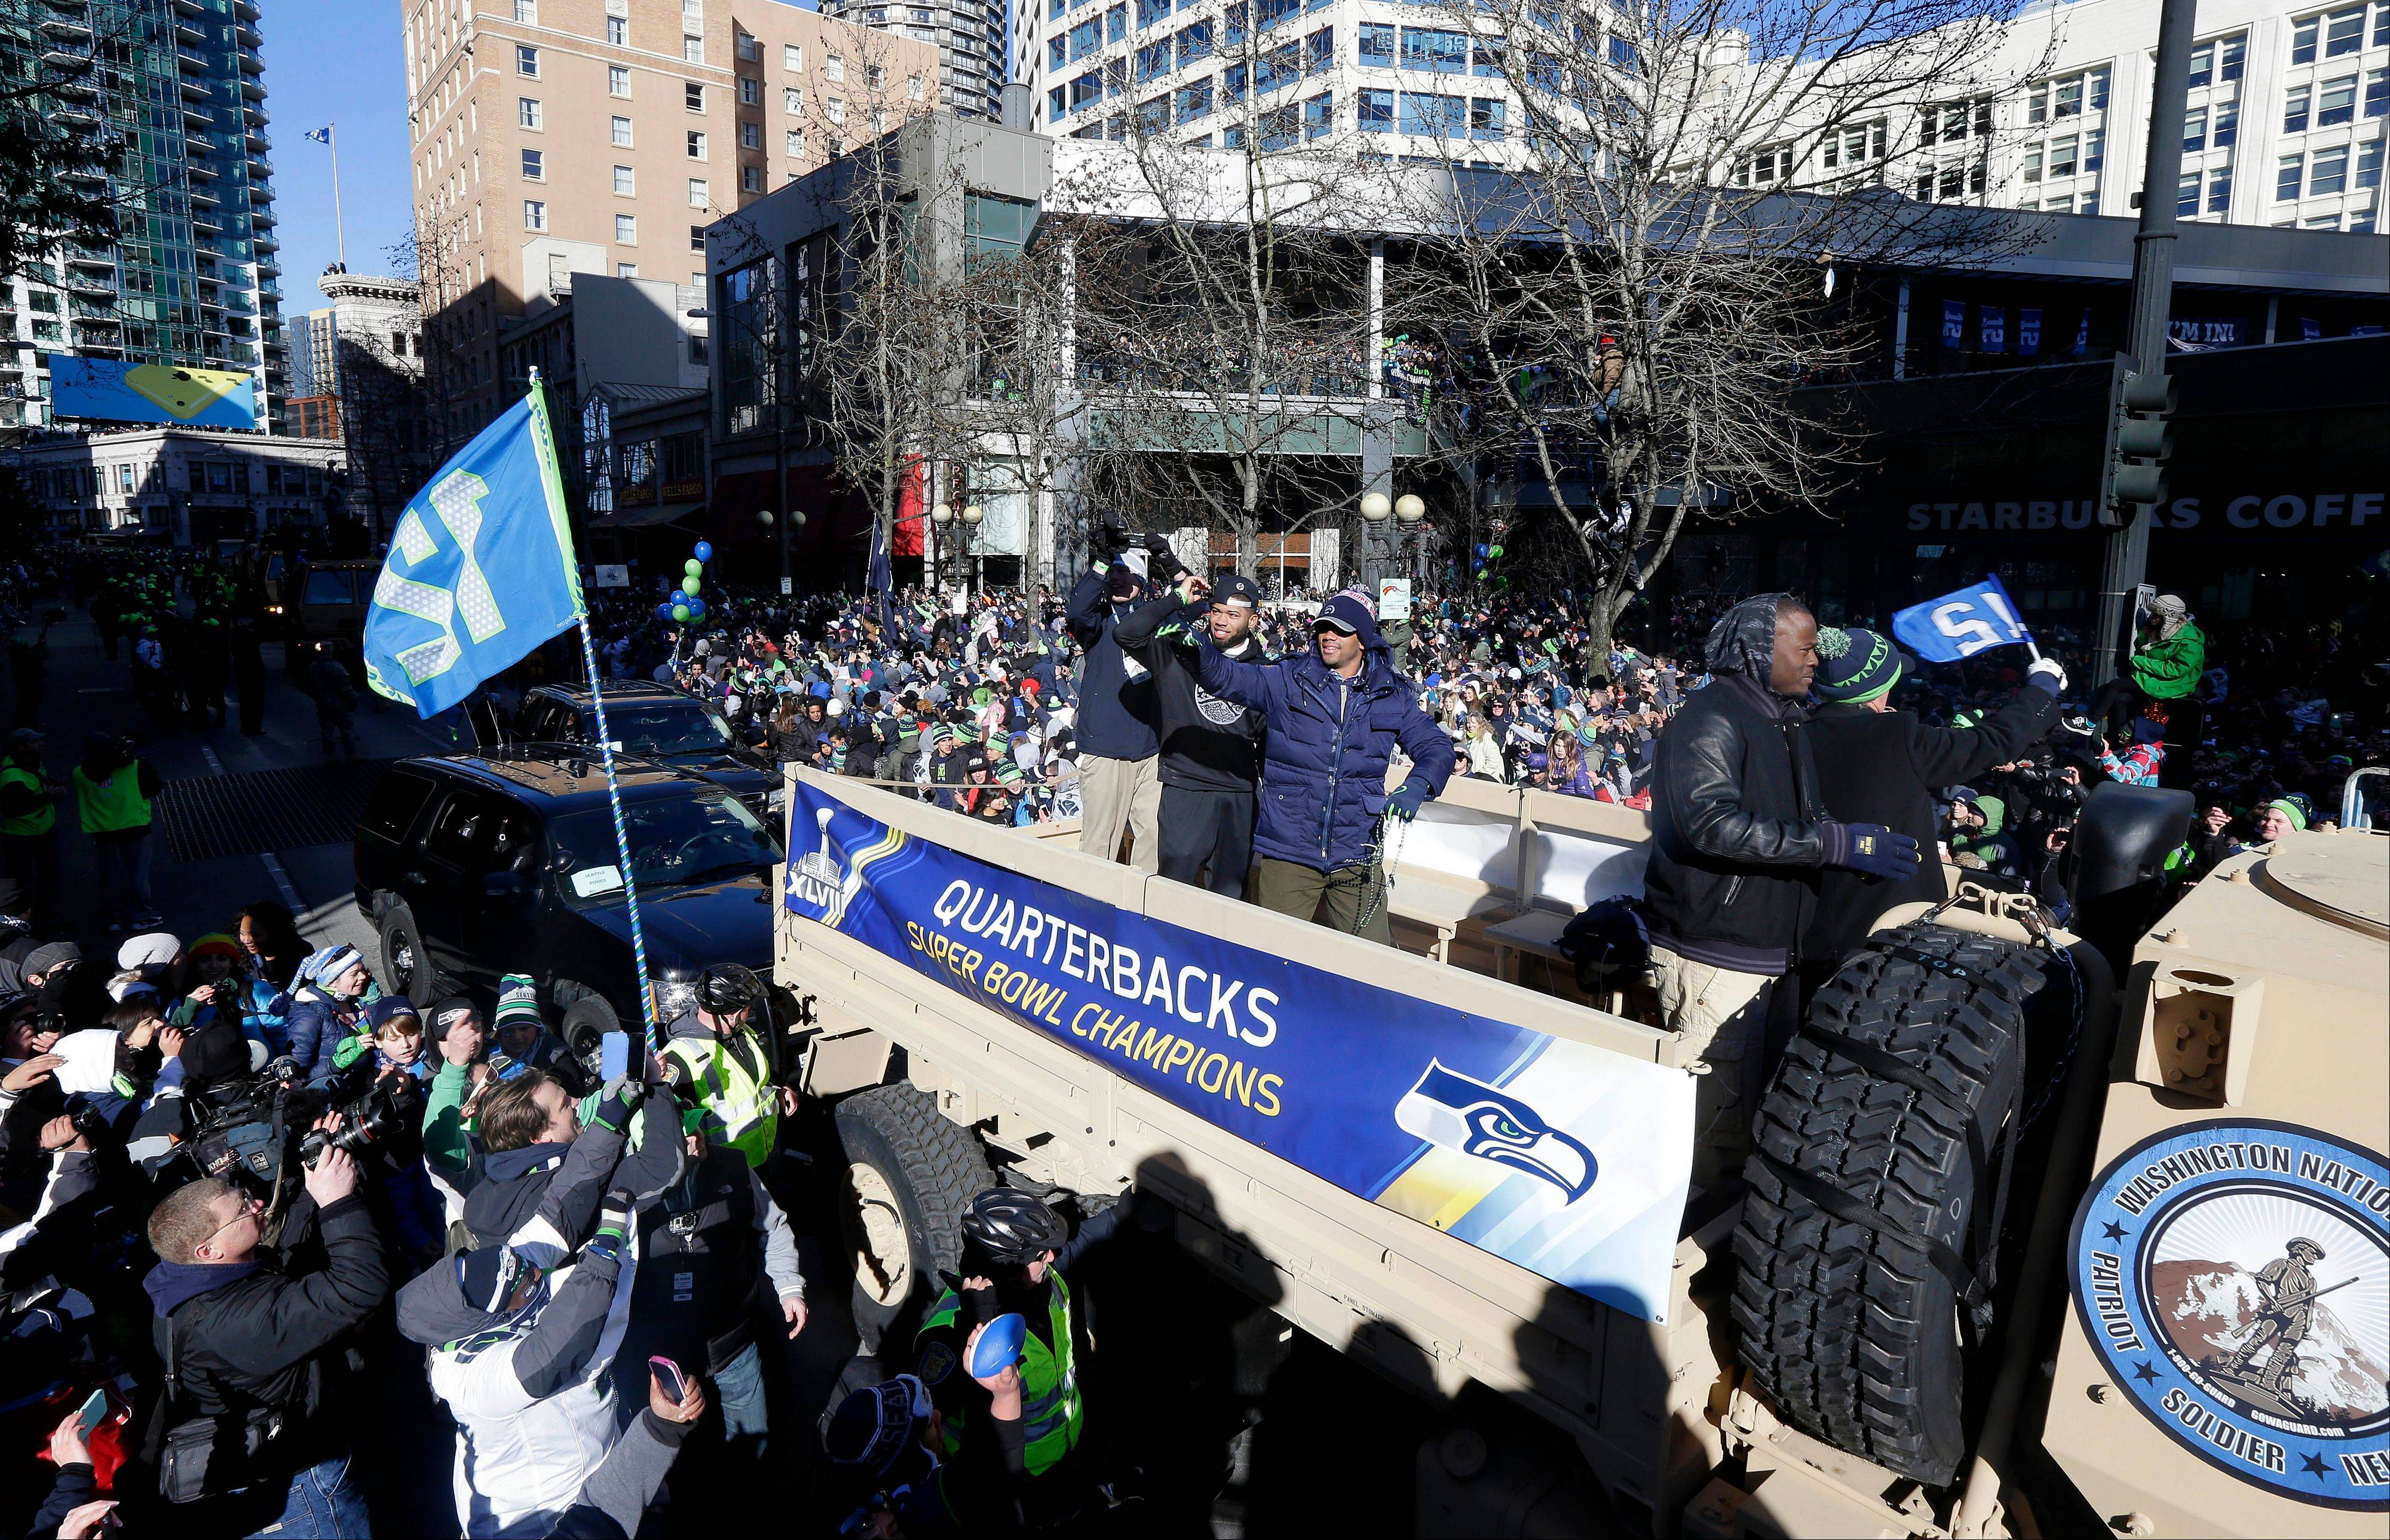 Seattle Seahawks quarterback Russell Wilson, center, waves to fans during the Super Bowl champions parade on Wednesday, Feb. 5, 2014, in Seattle. The Seahawks defeated the Denver Broncos 43-8 in NFL football's Super Bowl XLVIII on Sunday. (AP Photo/Ted S. Warren)